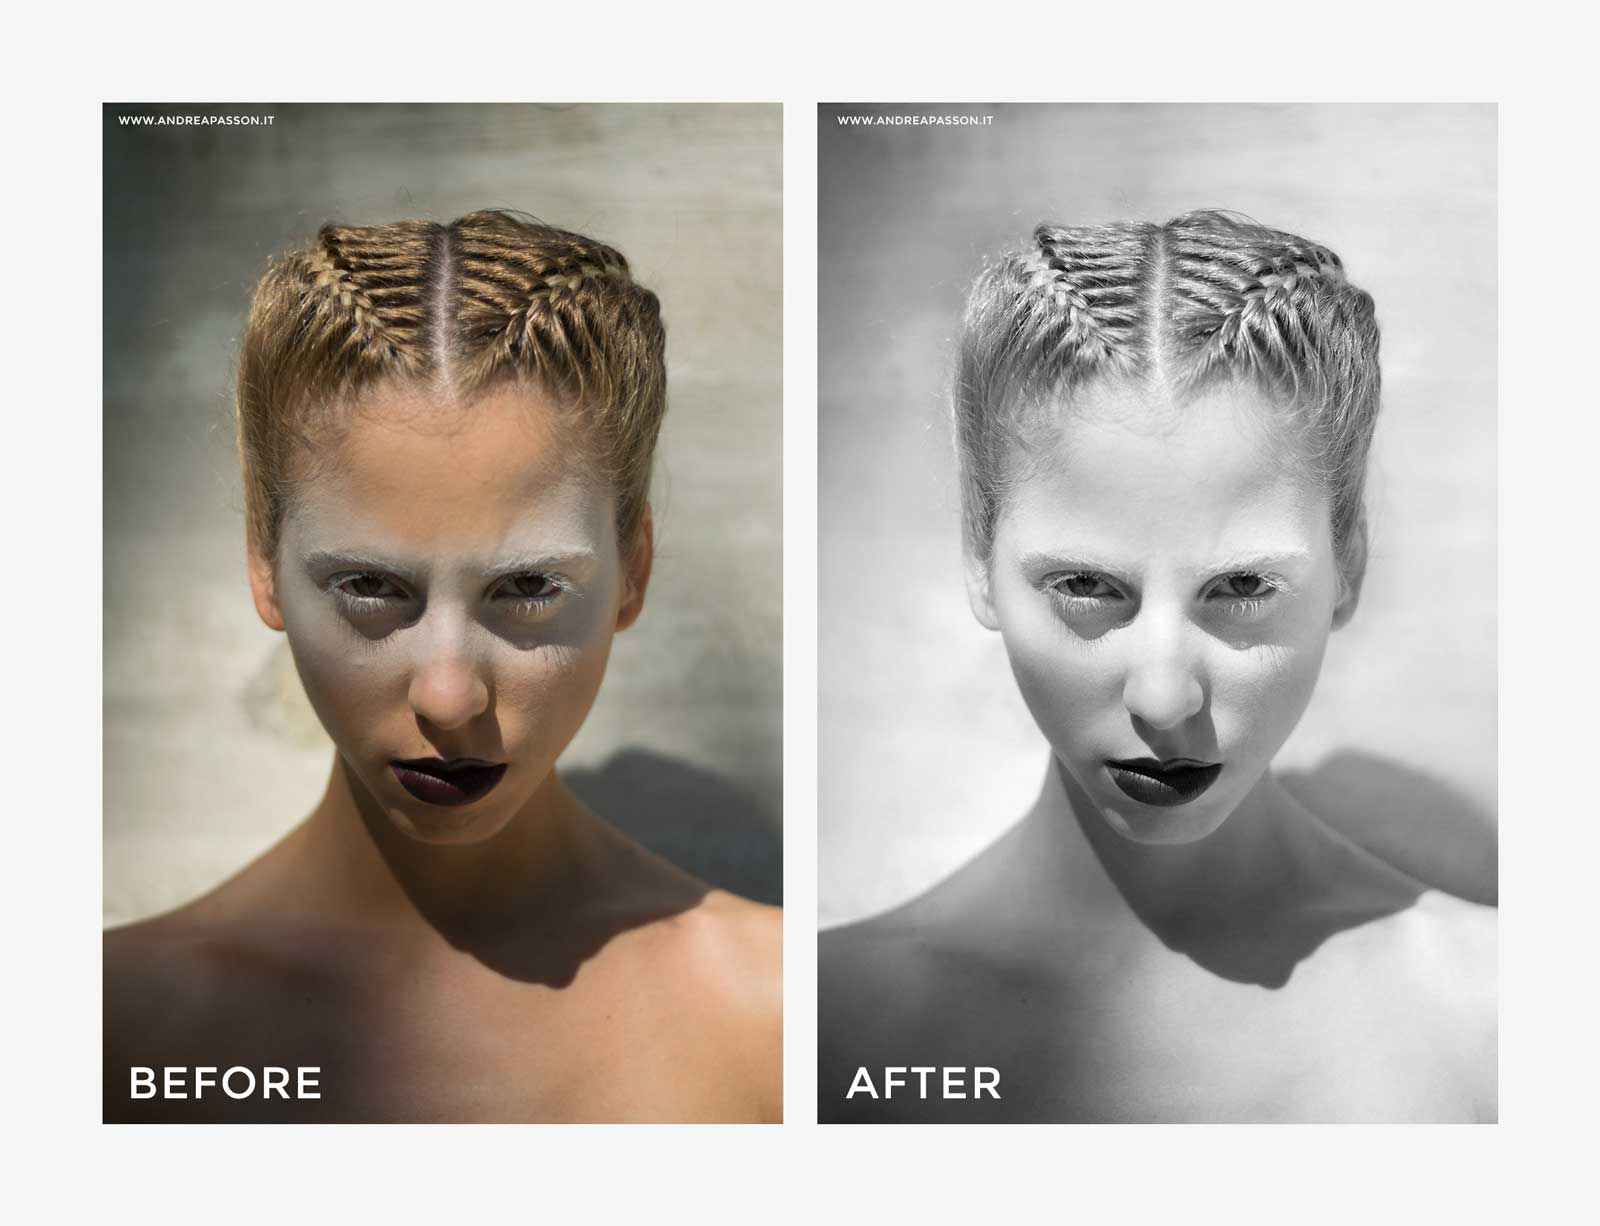 Before & After - Post Produzione Fotografica Professionale a Treviso - Fashion Model Hair Style and Make up